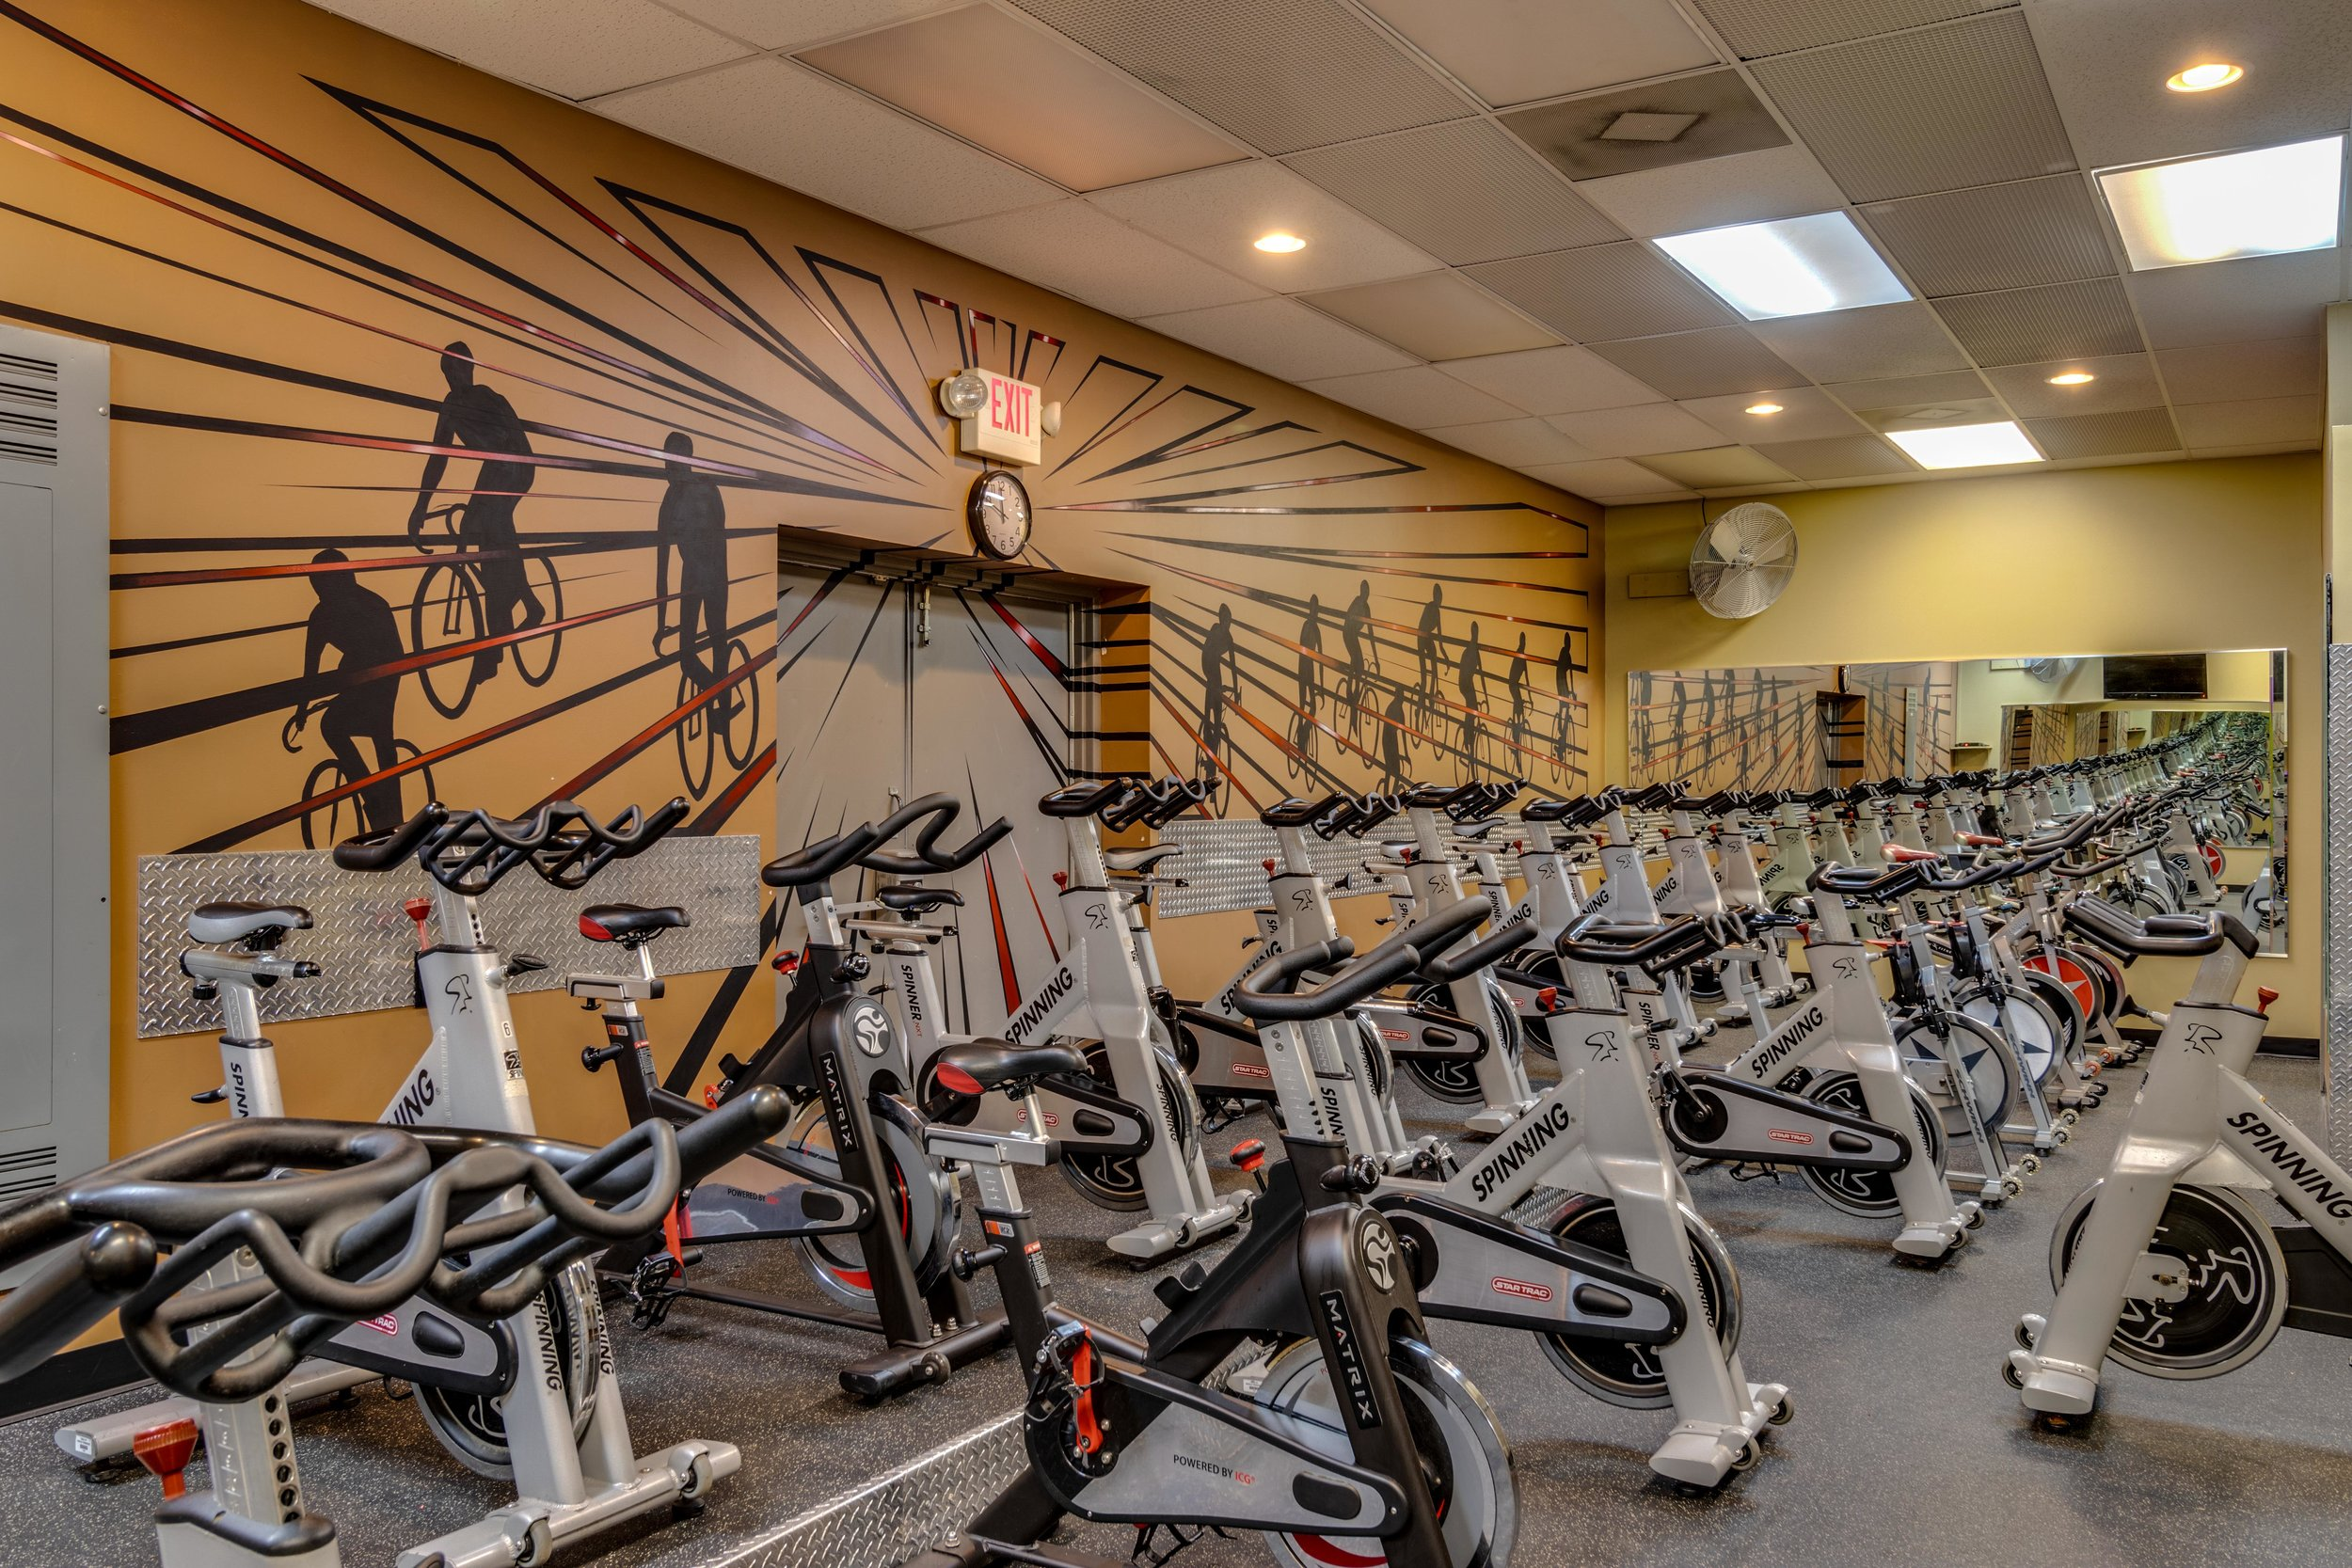 Harvey's Gym Columbia Tennessee kenneth purdom LORES (65 of 90).jpg